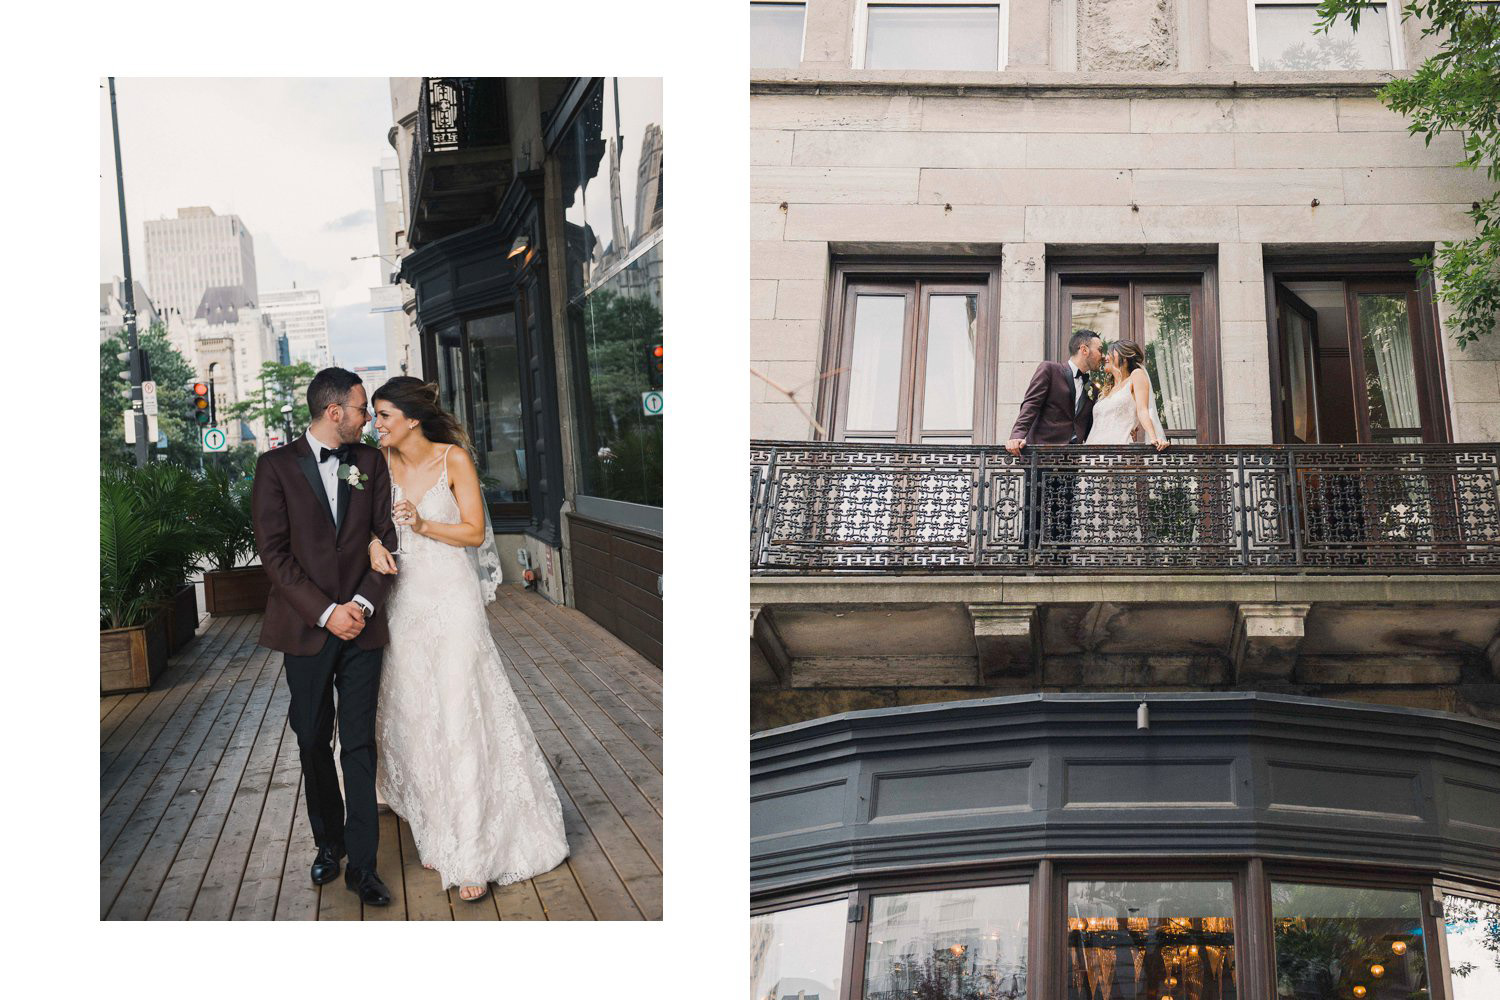 Wedding portraits of the happy couple outside of Ristorante Beatrice in the heart of downtown Montreal.